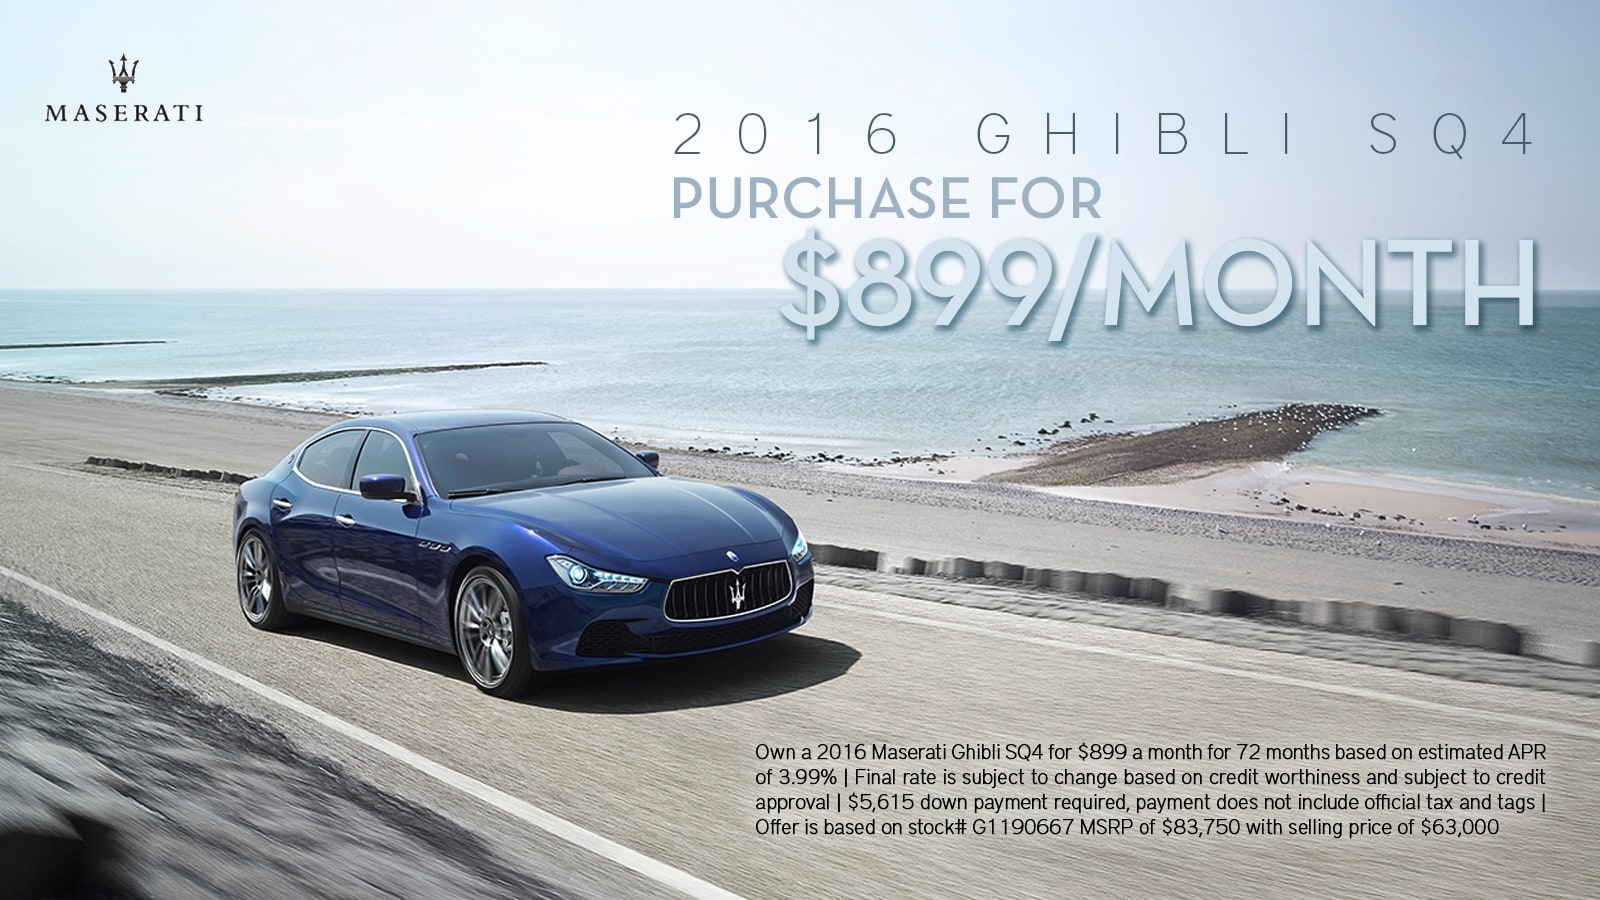 Nissan Showroom Near Me >> Maserati of Wilmington Pike | New Maserati dealership in CHADDS FORD, PA 19317 Find a New ...